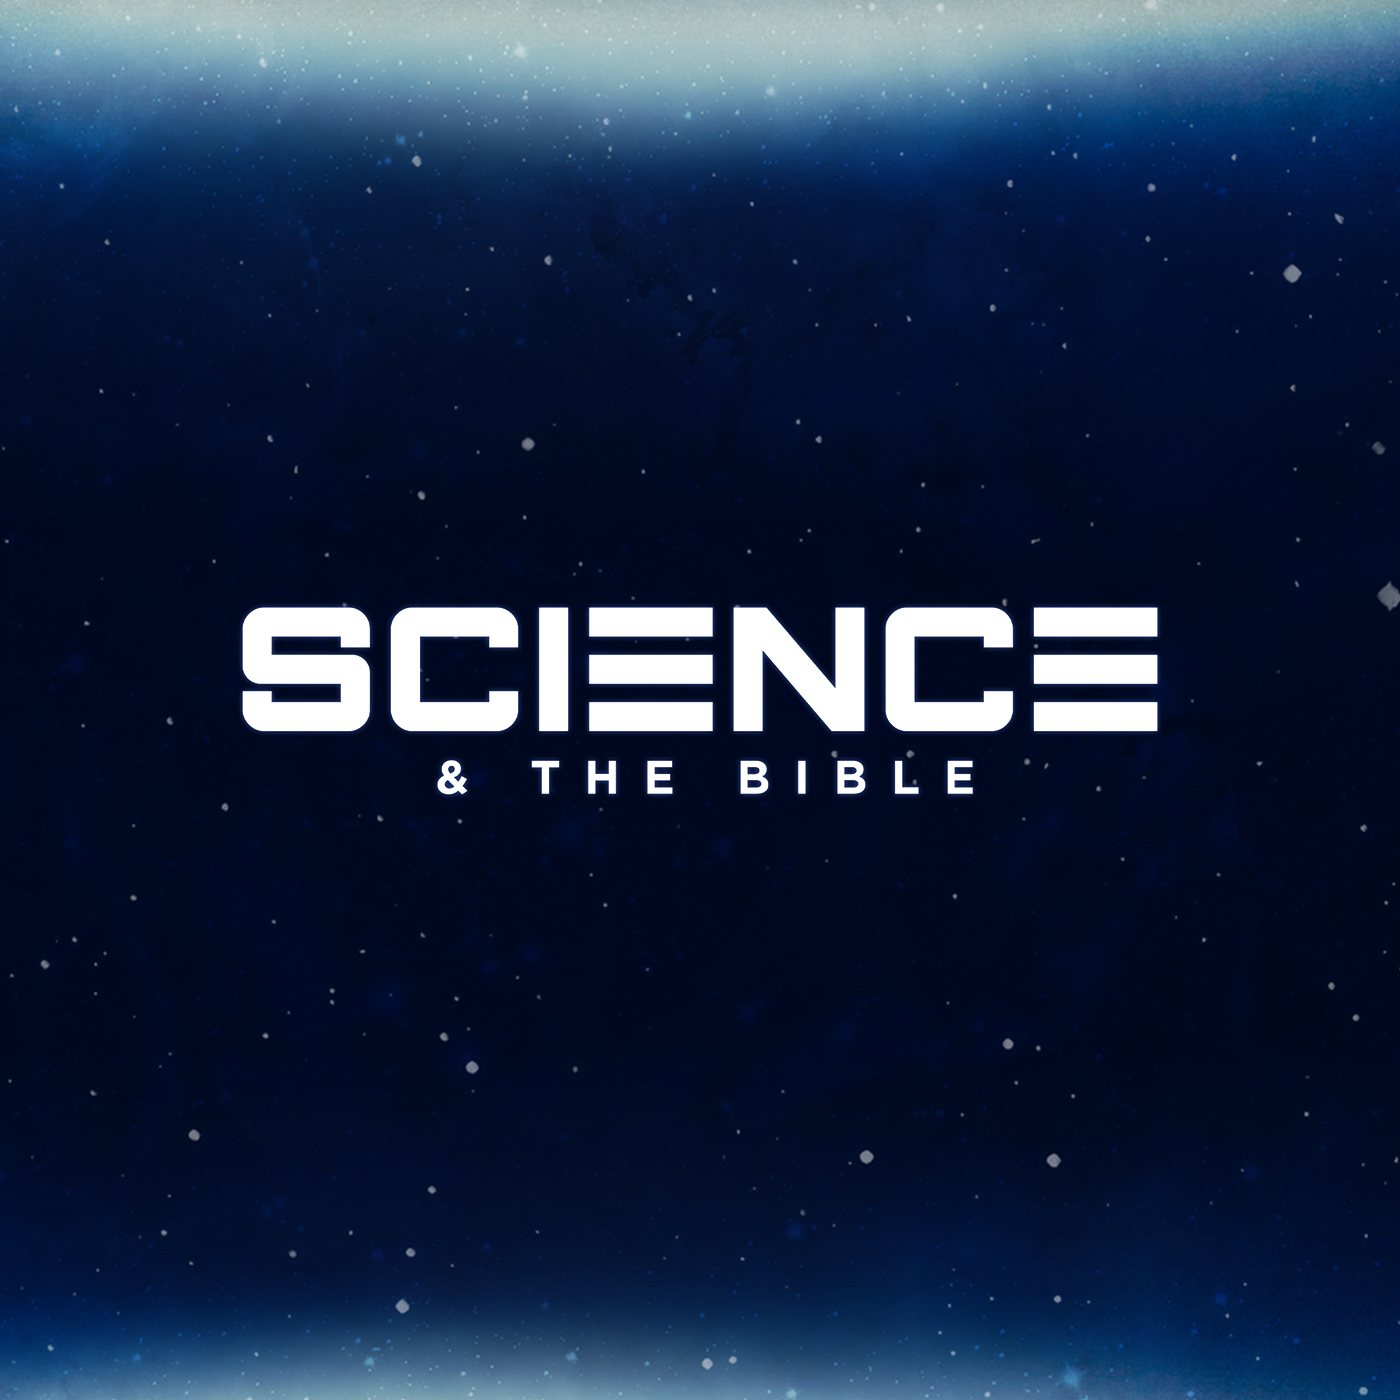 Science and the Bible Square Image.jpg